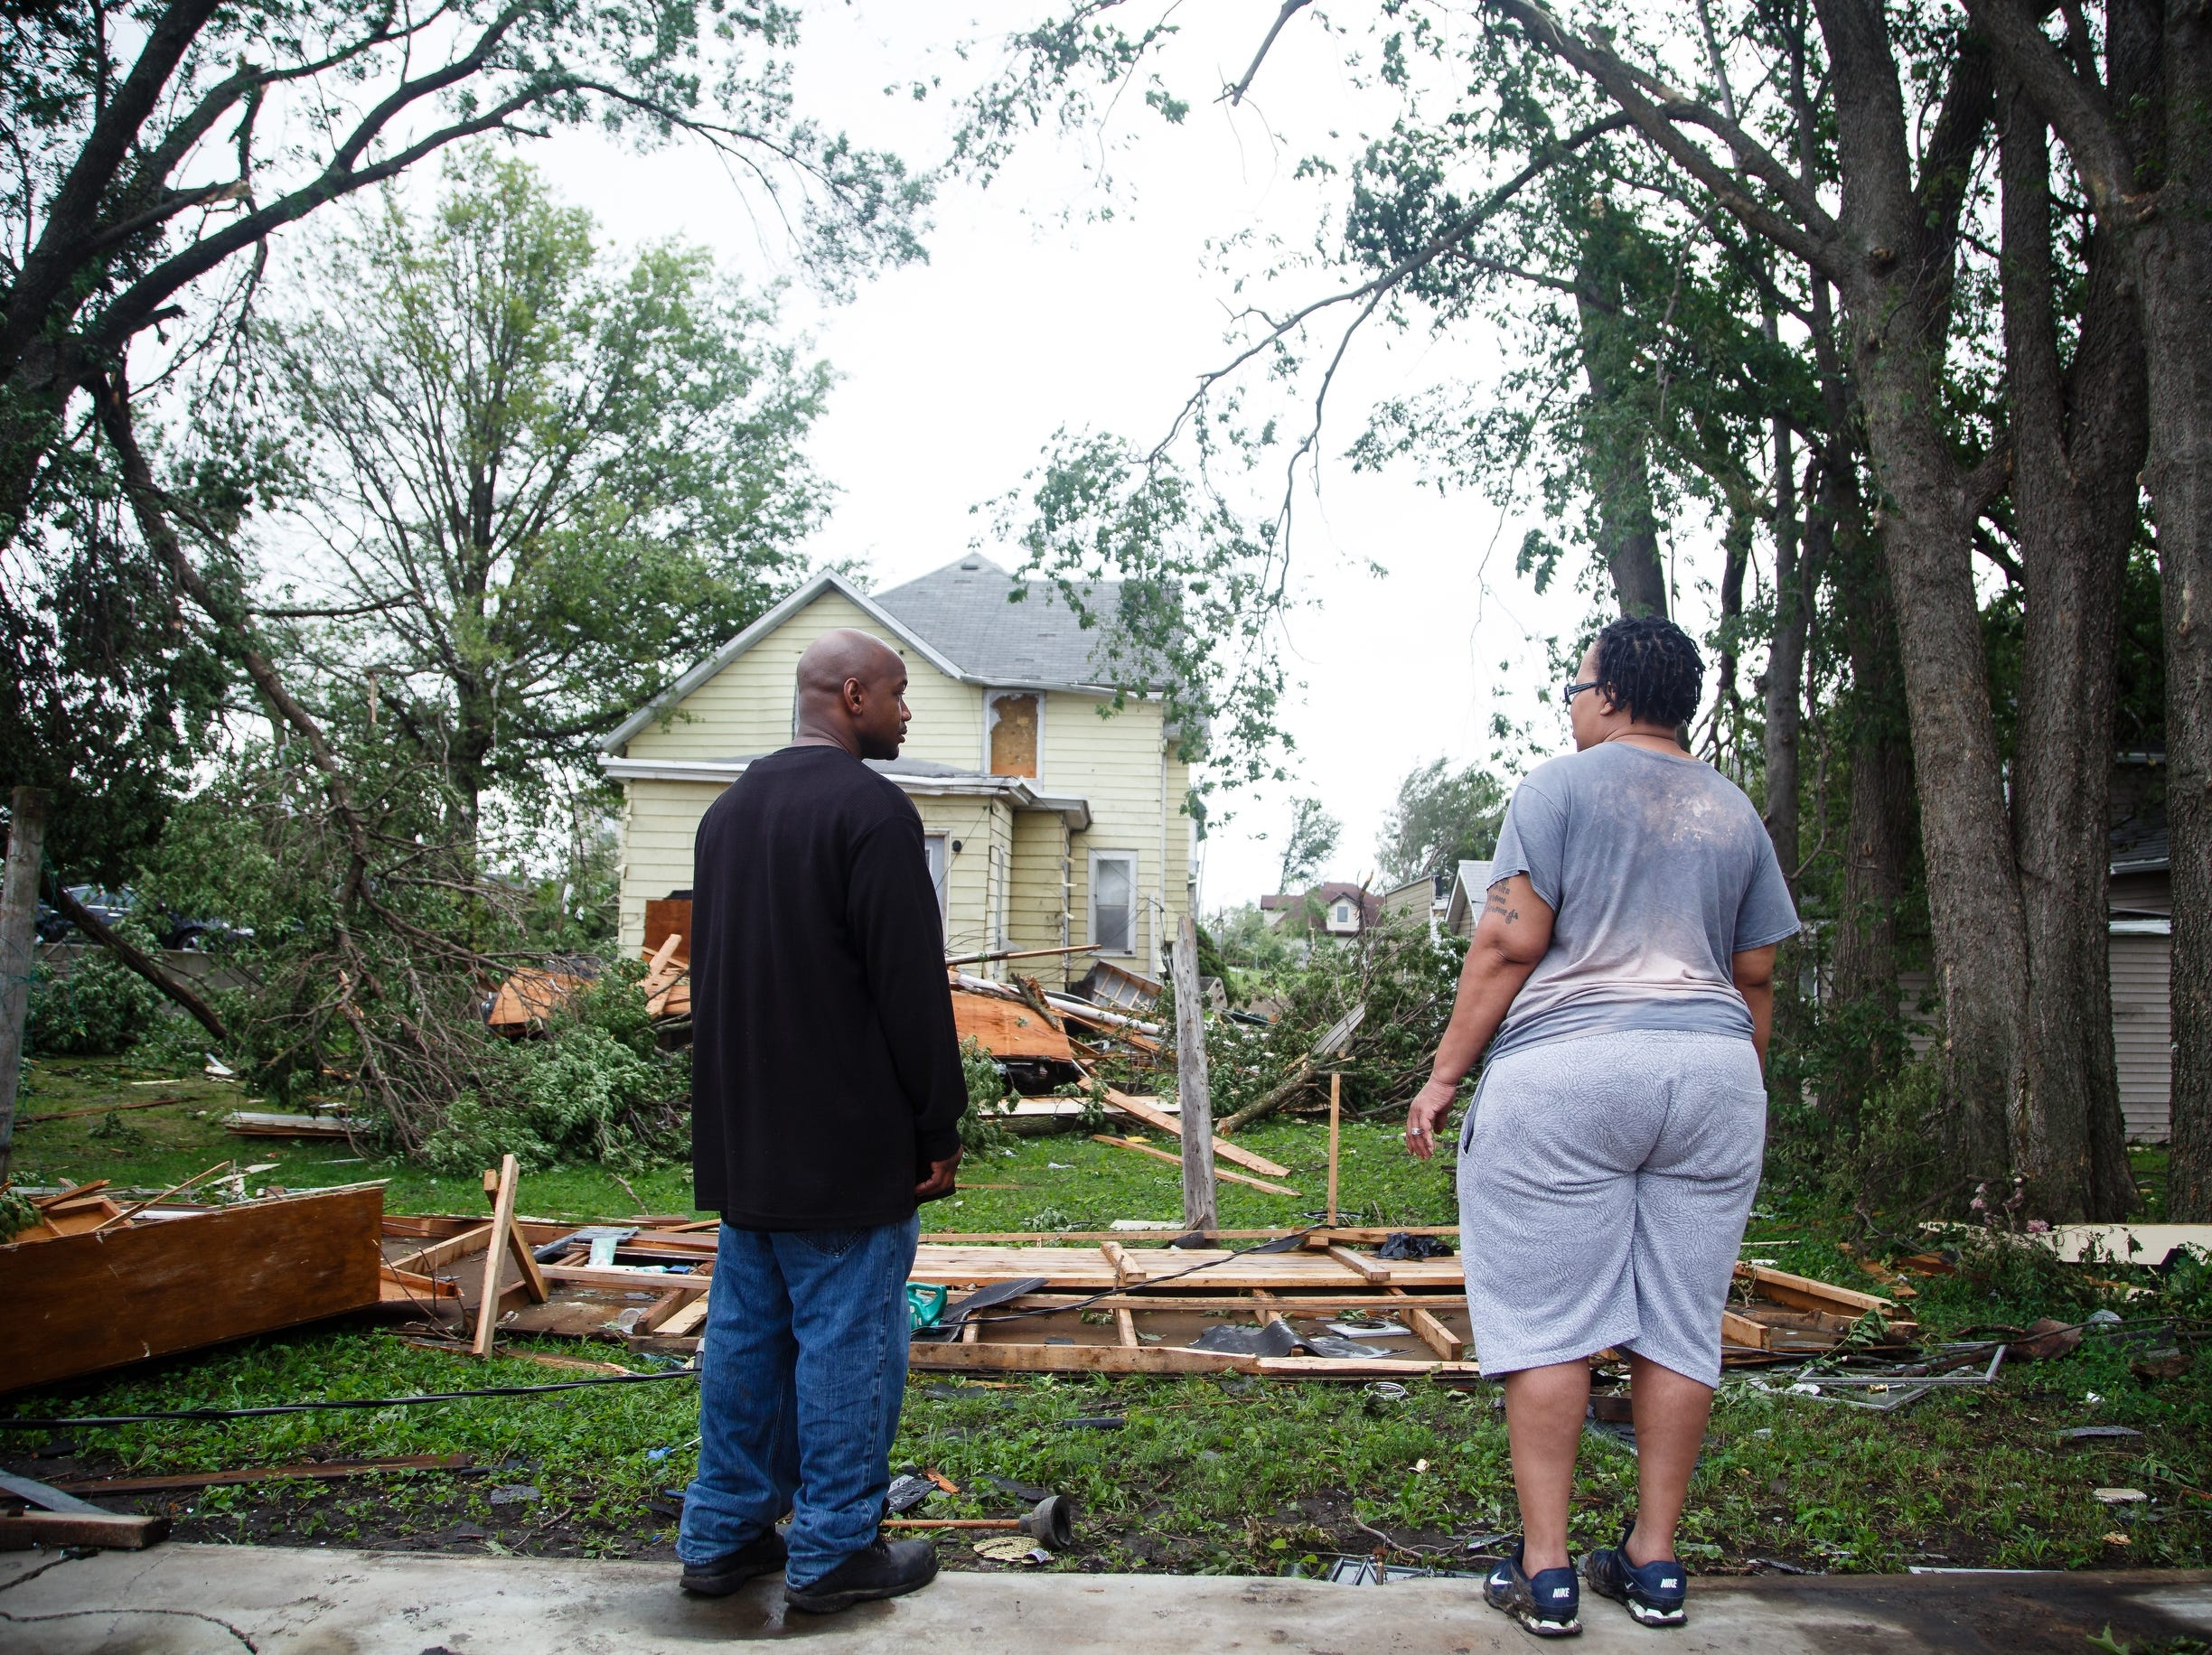 """I don't know what to say,"" said Jerome McDowell, left, as he and Kassandra McDowell, right, clean up after a tornado swept through Marshalltown on Friday, July 20, 2018. ""We were blessed,"" he added after they received only minimal damage despite being in one of the worst hit parts of town."